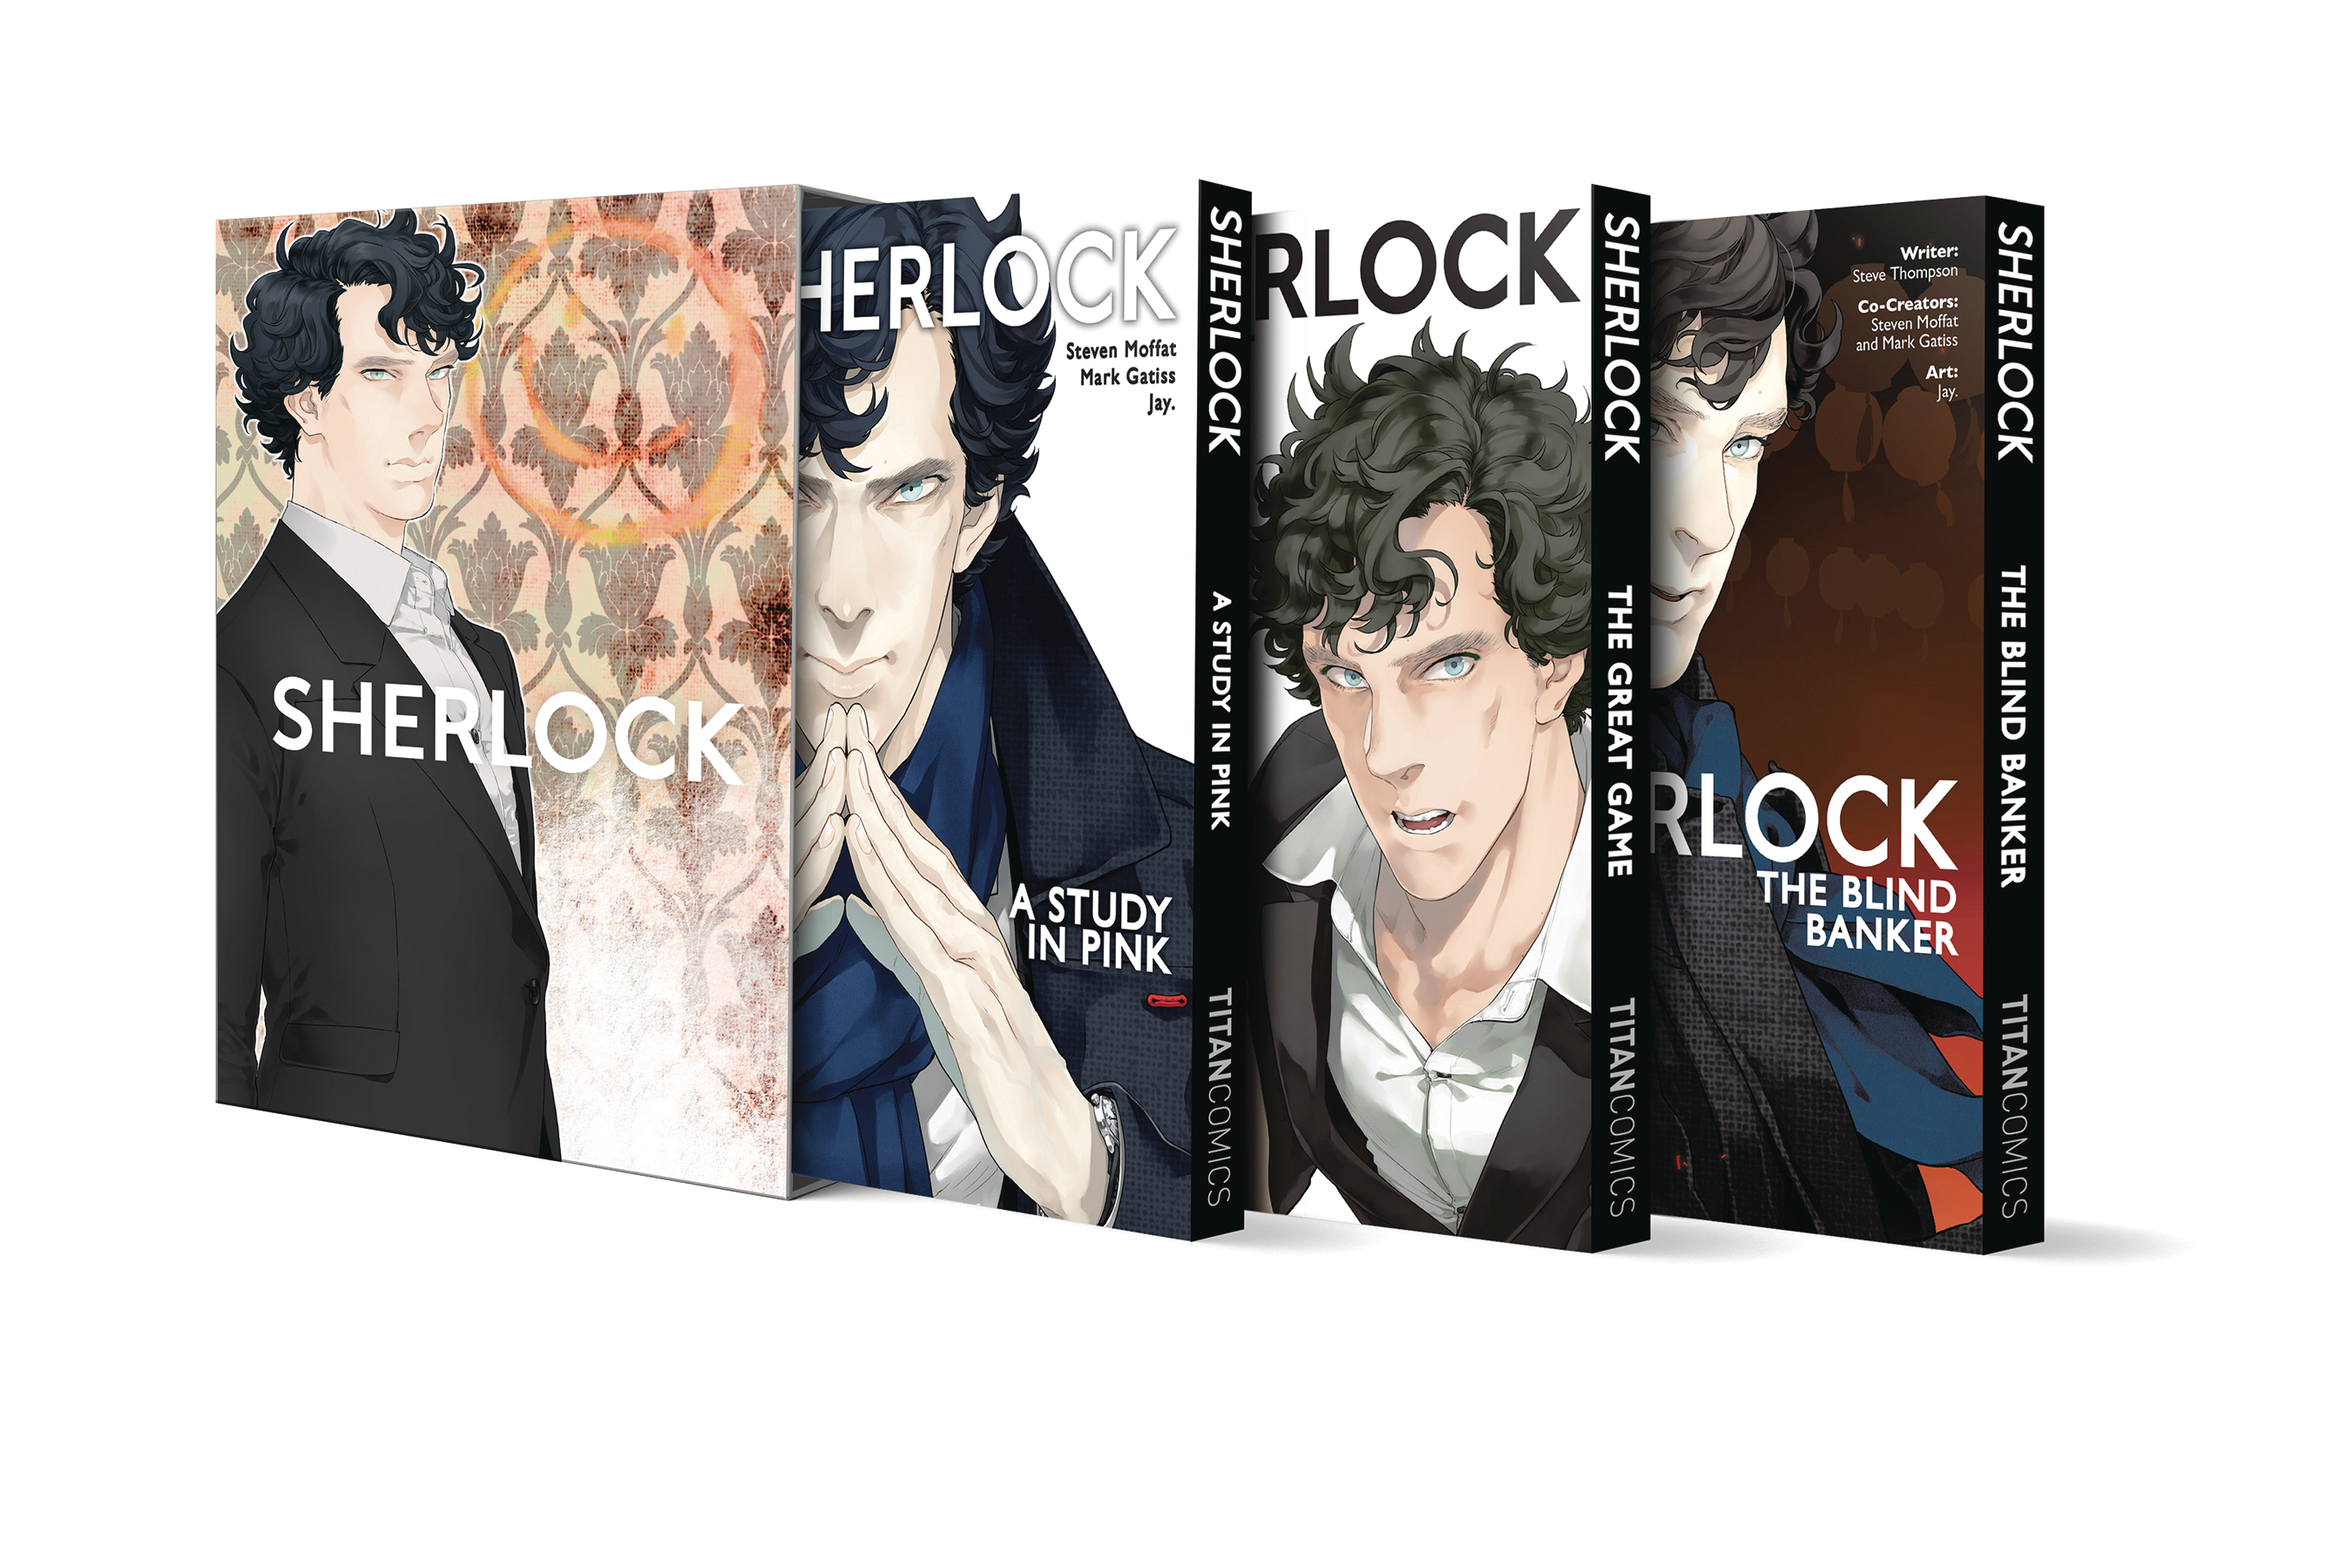 SHERLOCK SEASON ONE BOX SET